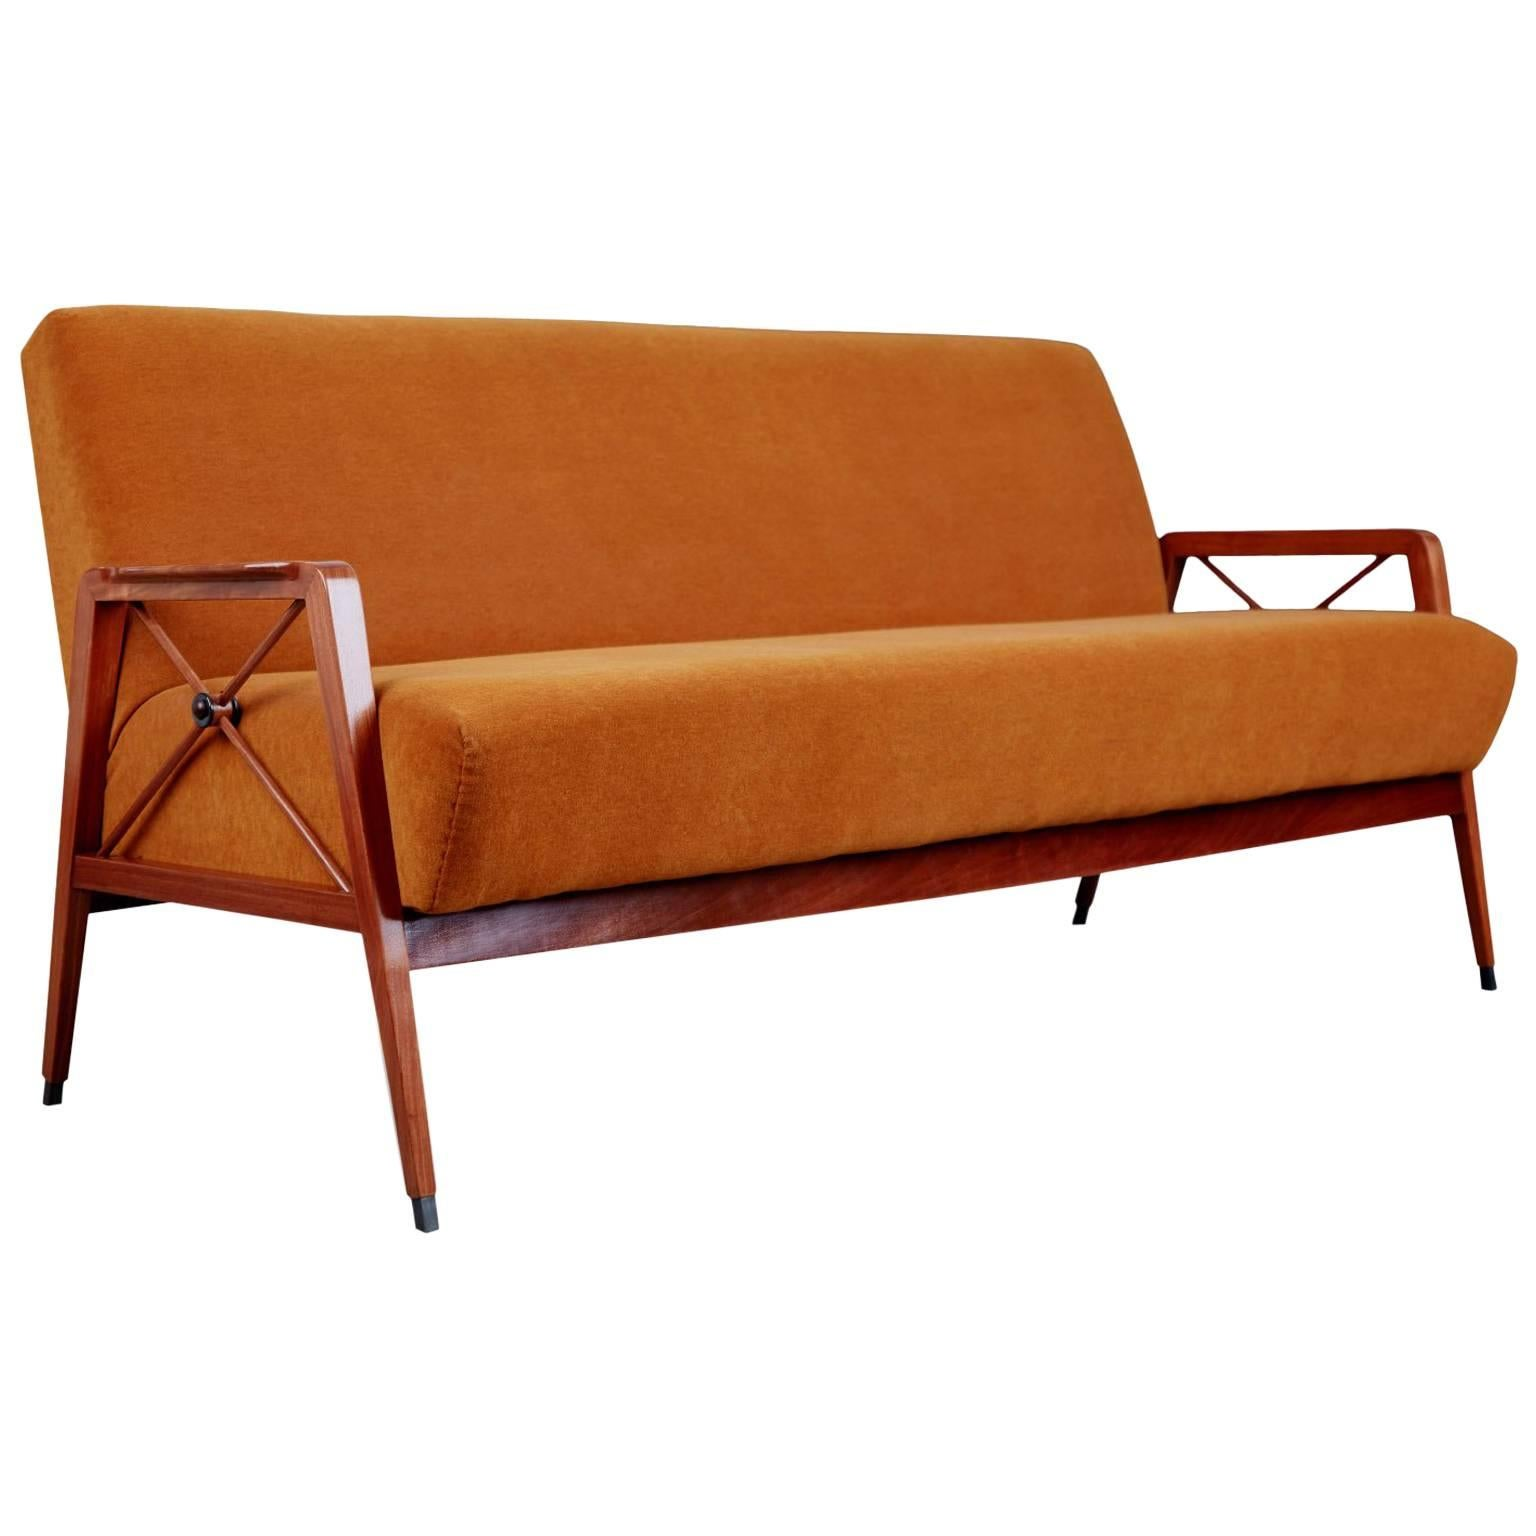 Beautiful Exotic Caviuna Wood And Mohair Sofa By Cavallaro Brazil, Restored, Circa  1960 1